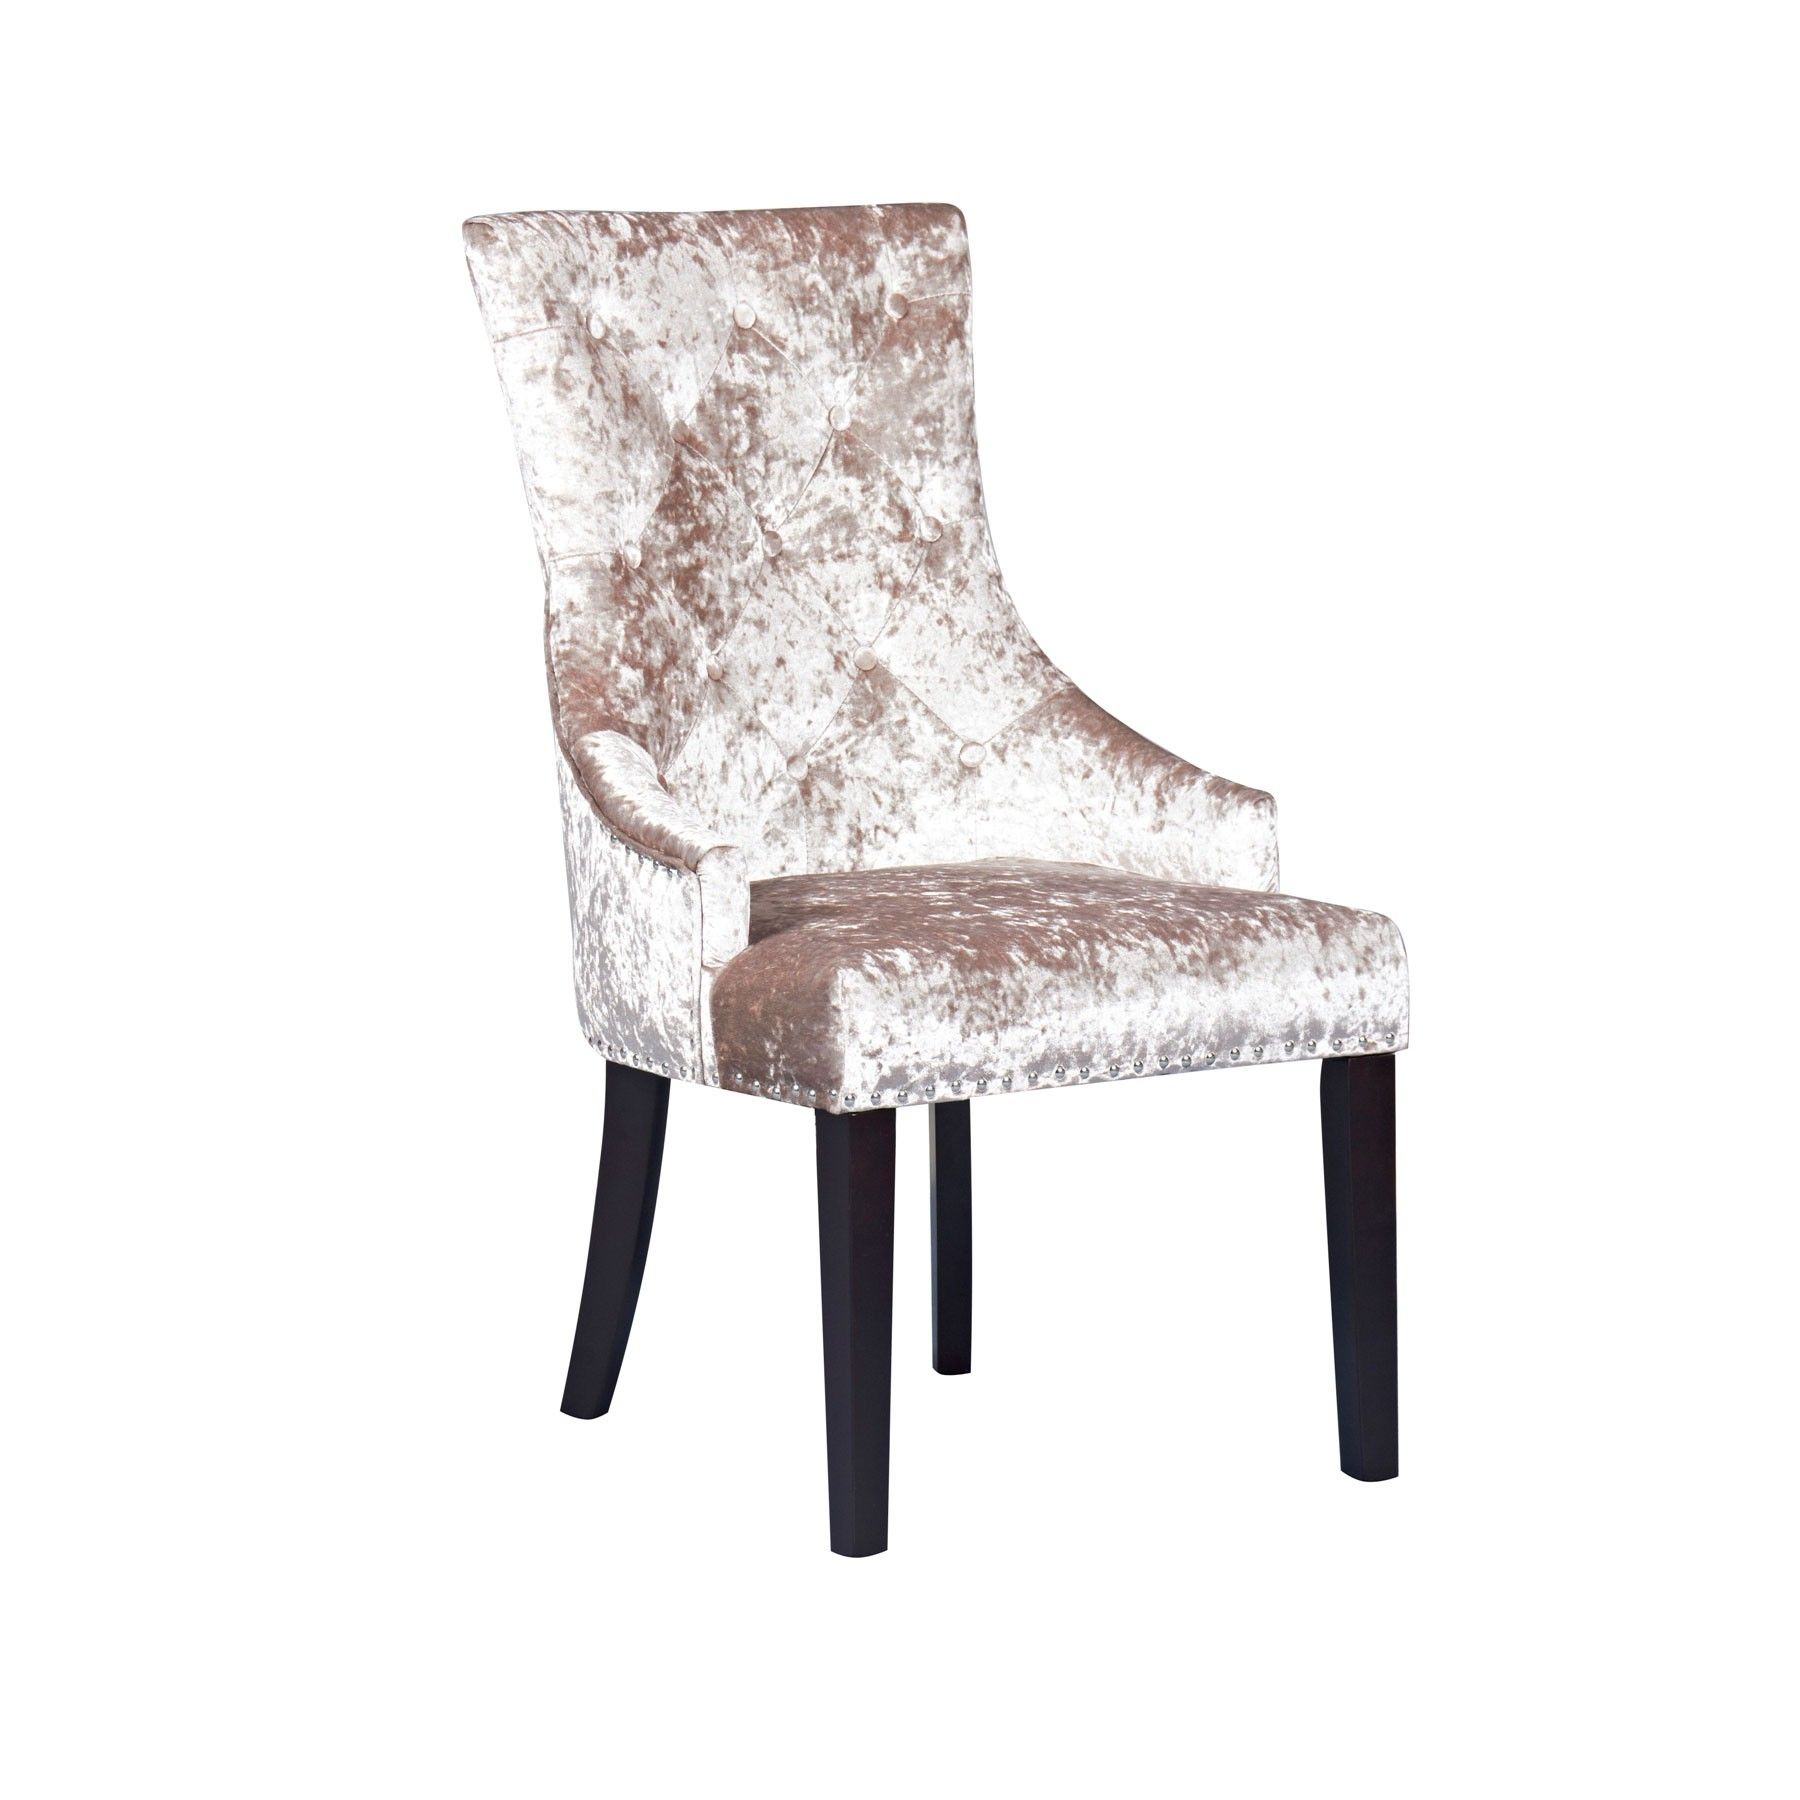 The Louis Mink Dining Chair Is Sure To Impress Thanks An Eye Catching Wenge Legs And Crushed Velvet Fabric Has A Seat